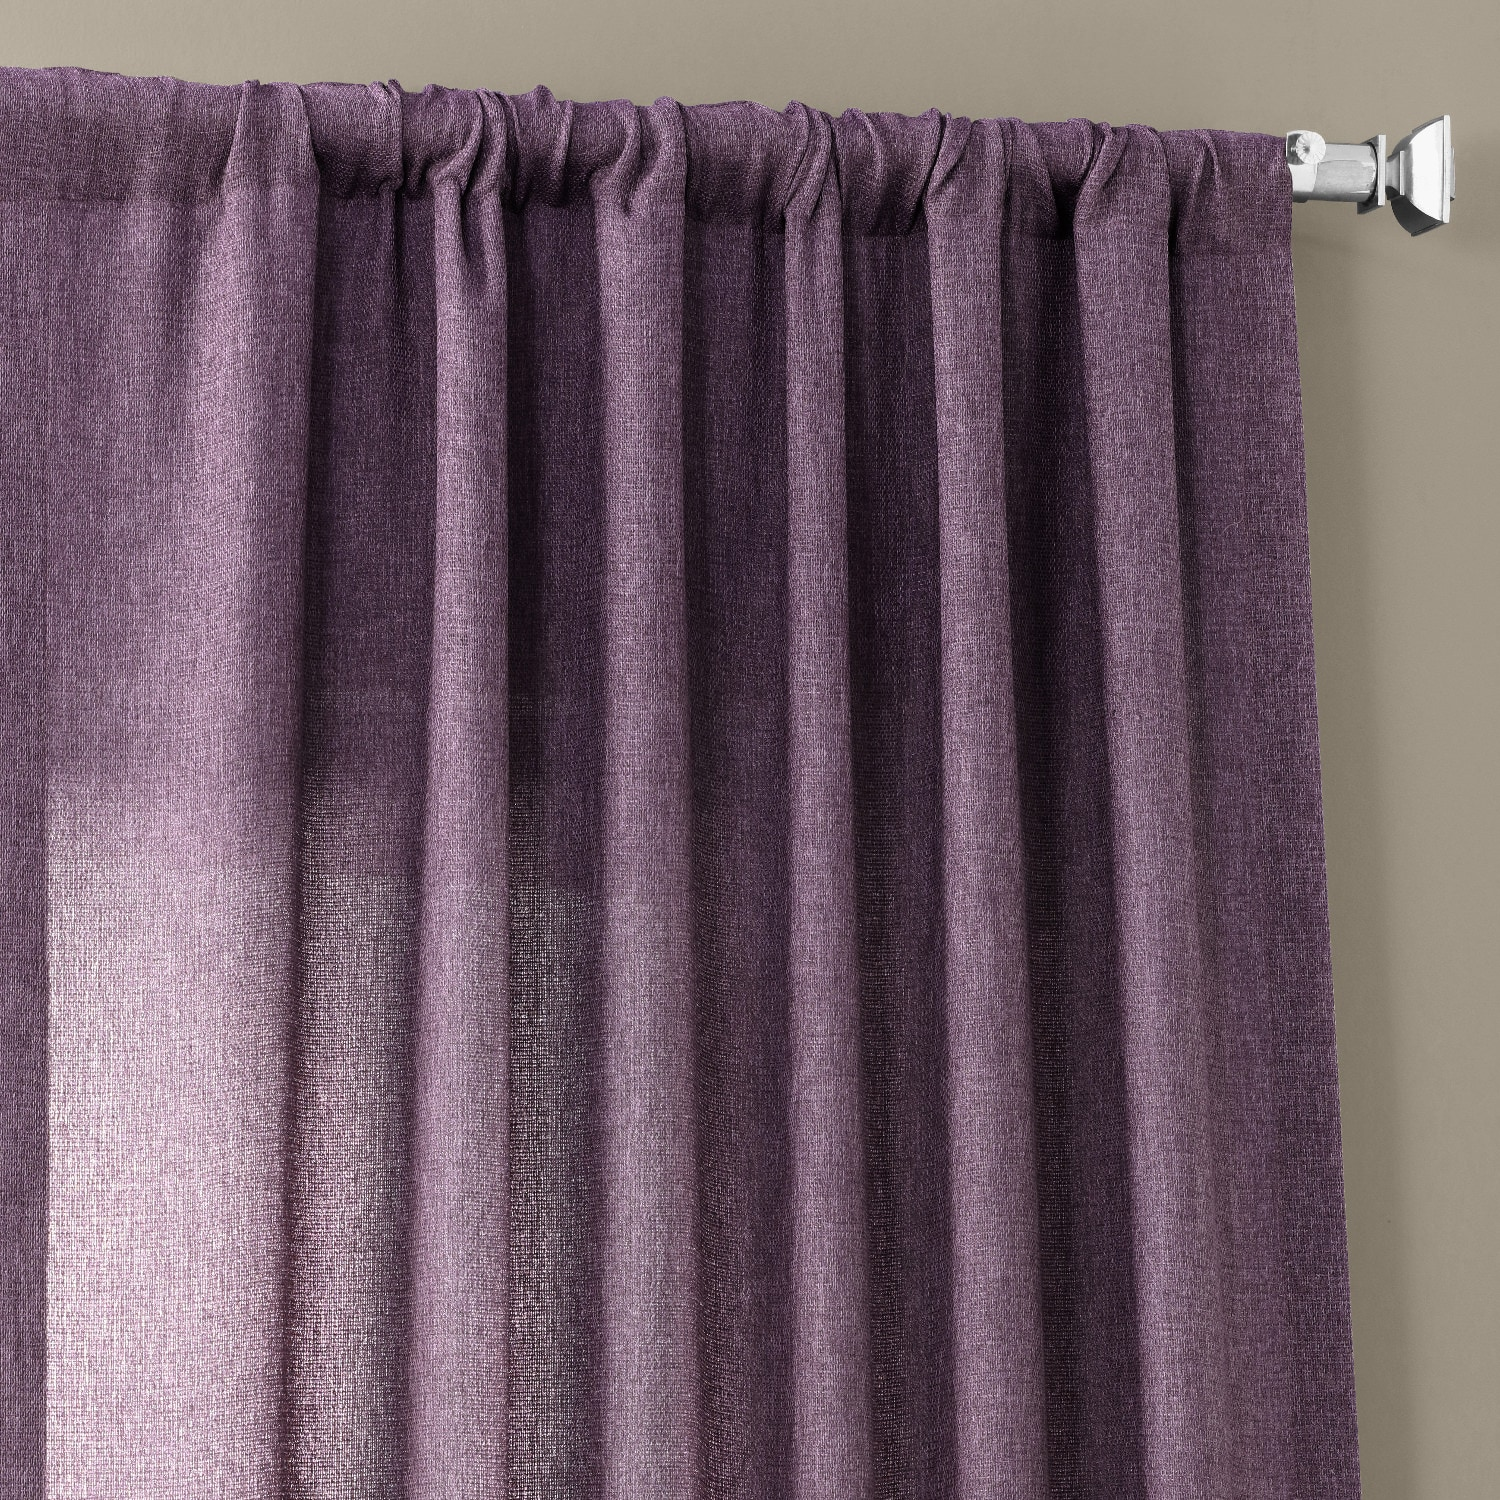 Stormy Purple Faux Linen Sheer Curtain